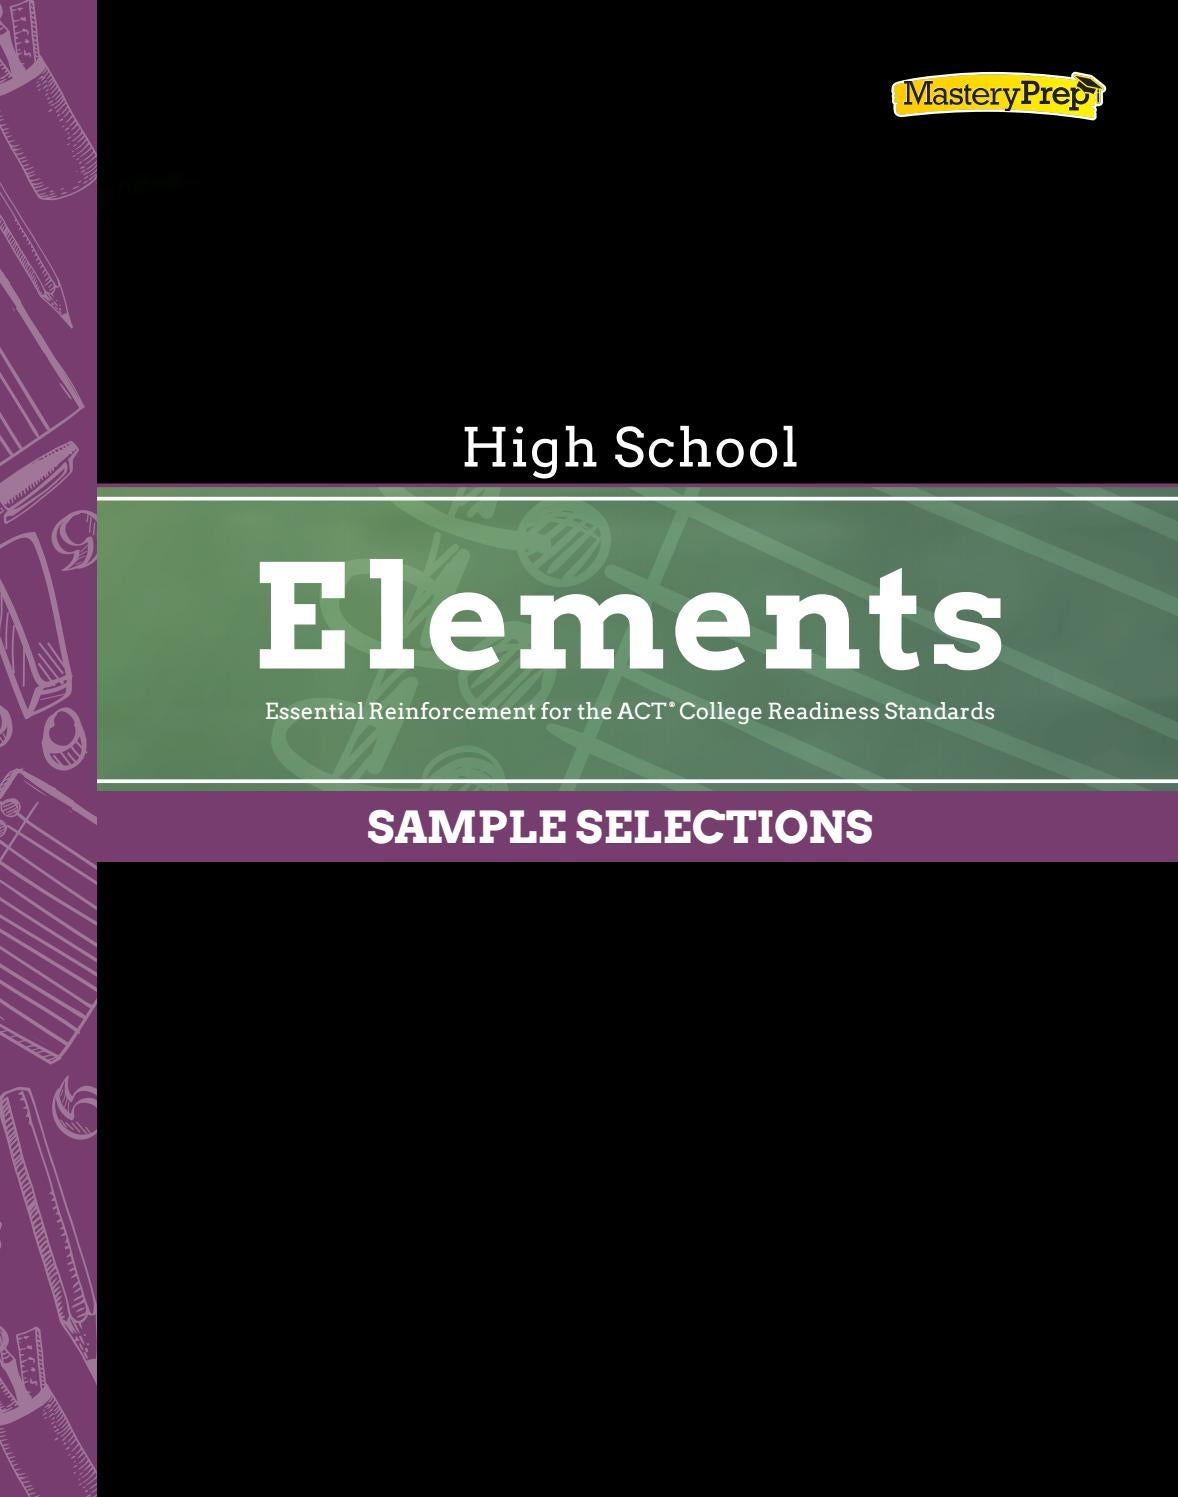 Sample | ACT Elements High School, 2016-17 by MasteryPrep ...